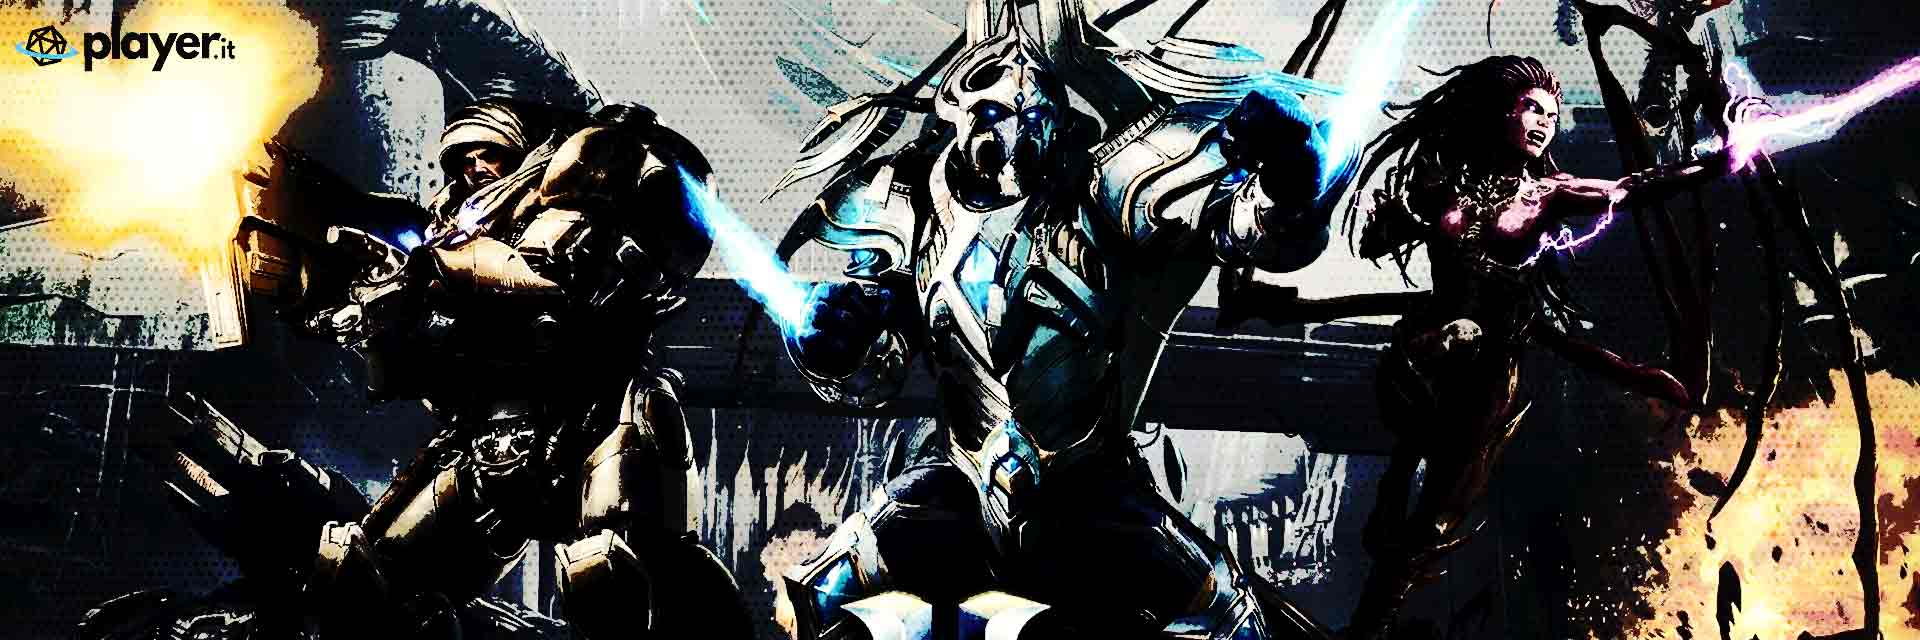 starcraft II wallpaper HD